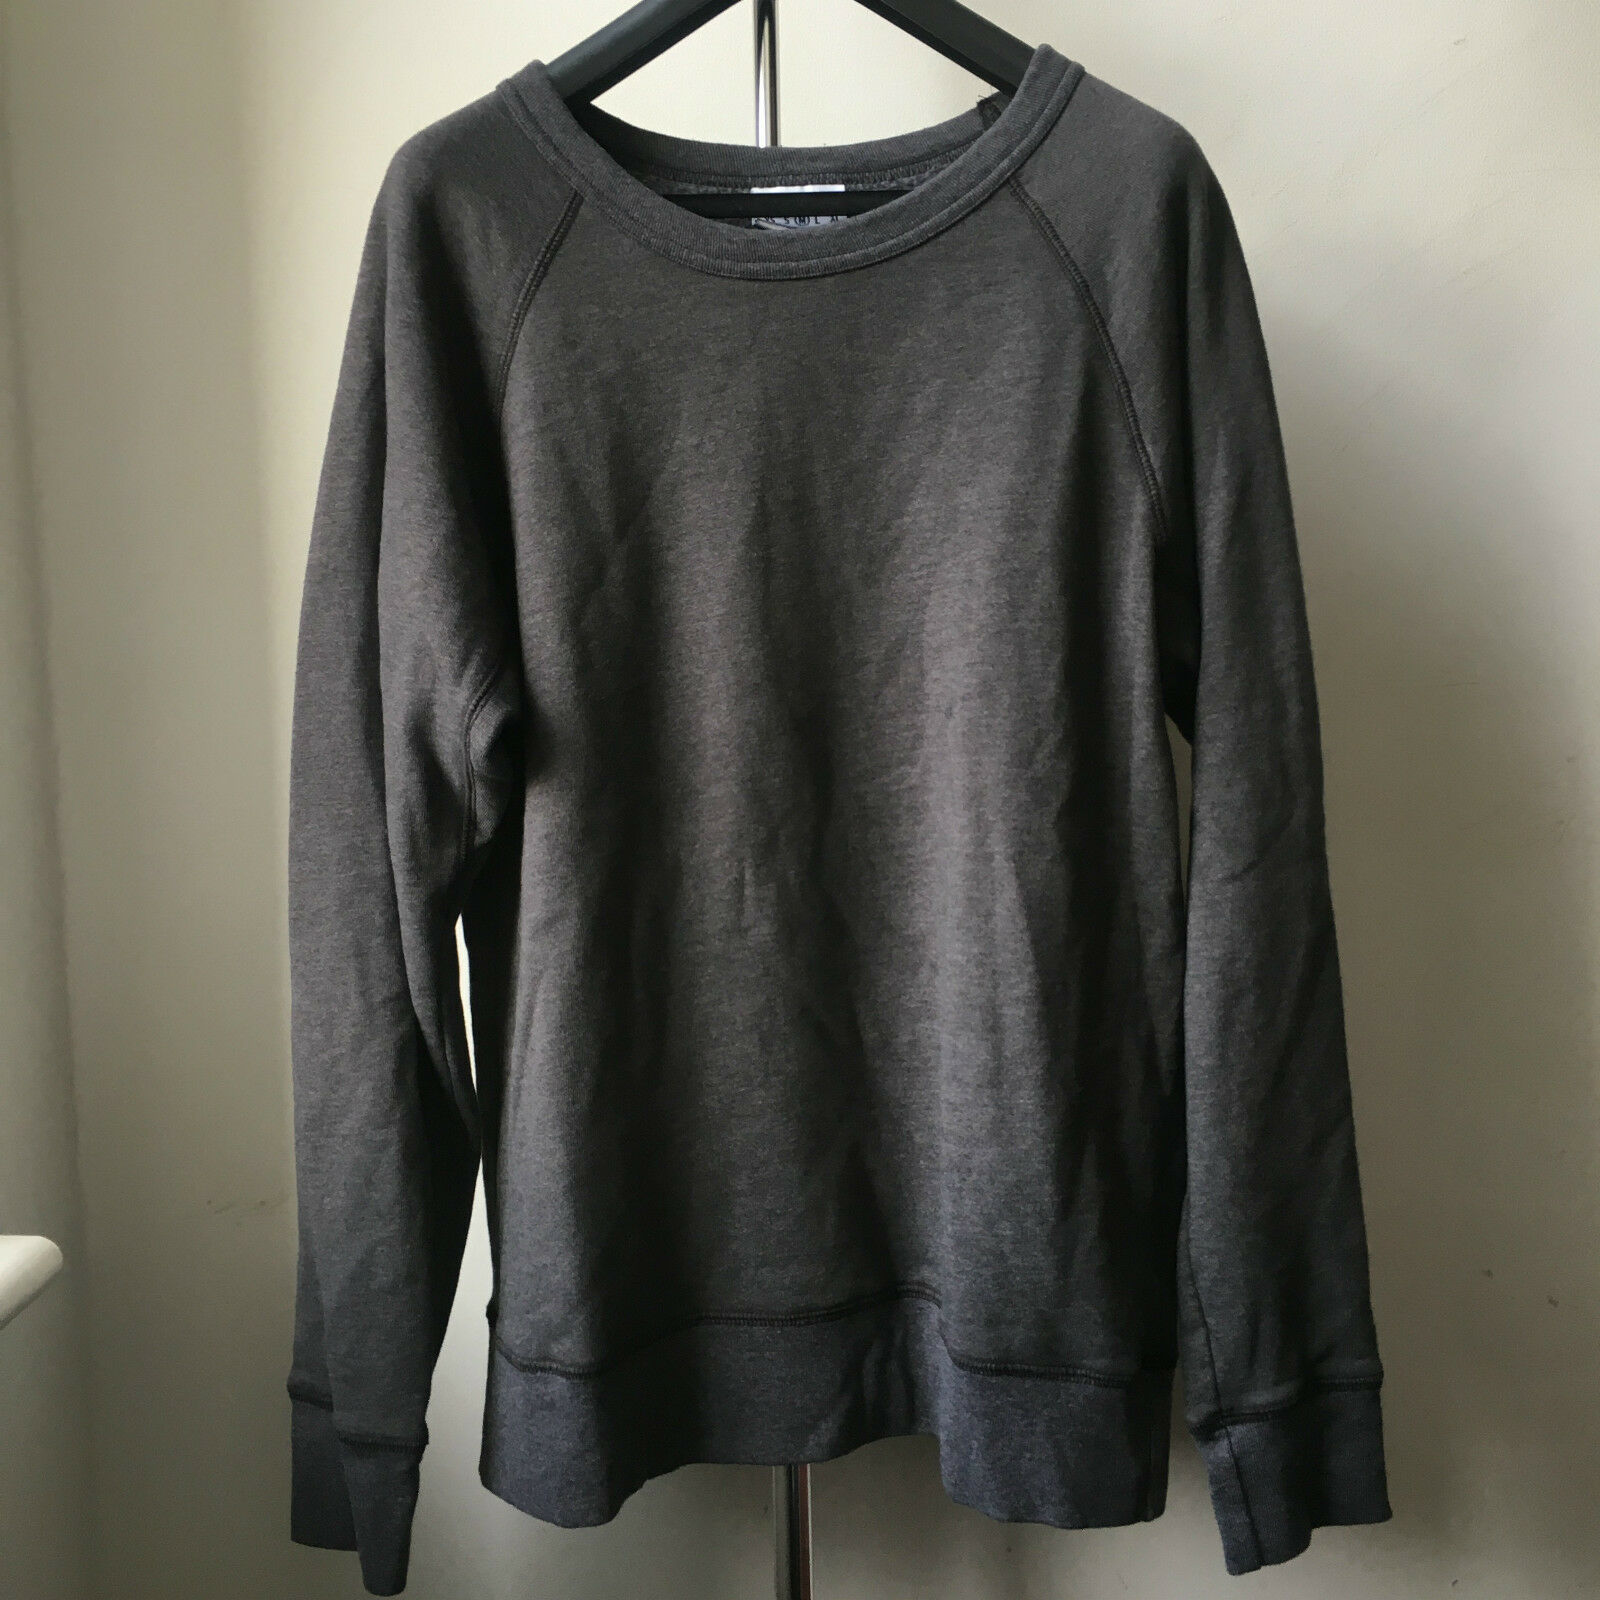 Very Cool RXMANCE Made in U.S.A. grau sweatshirt Sz M